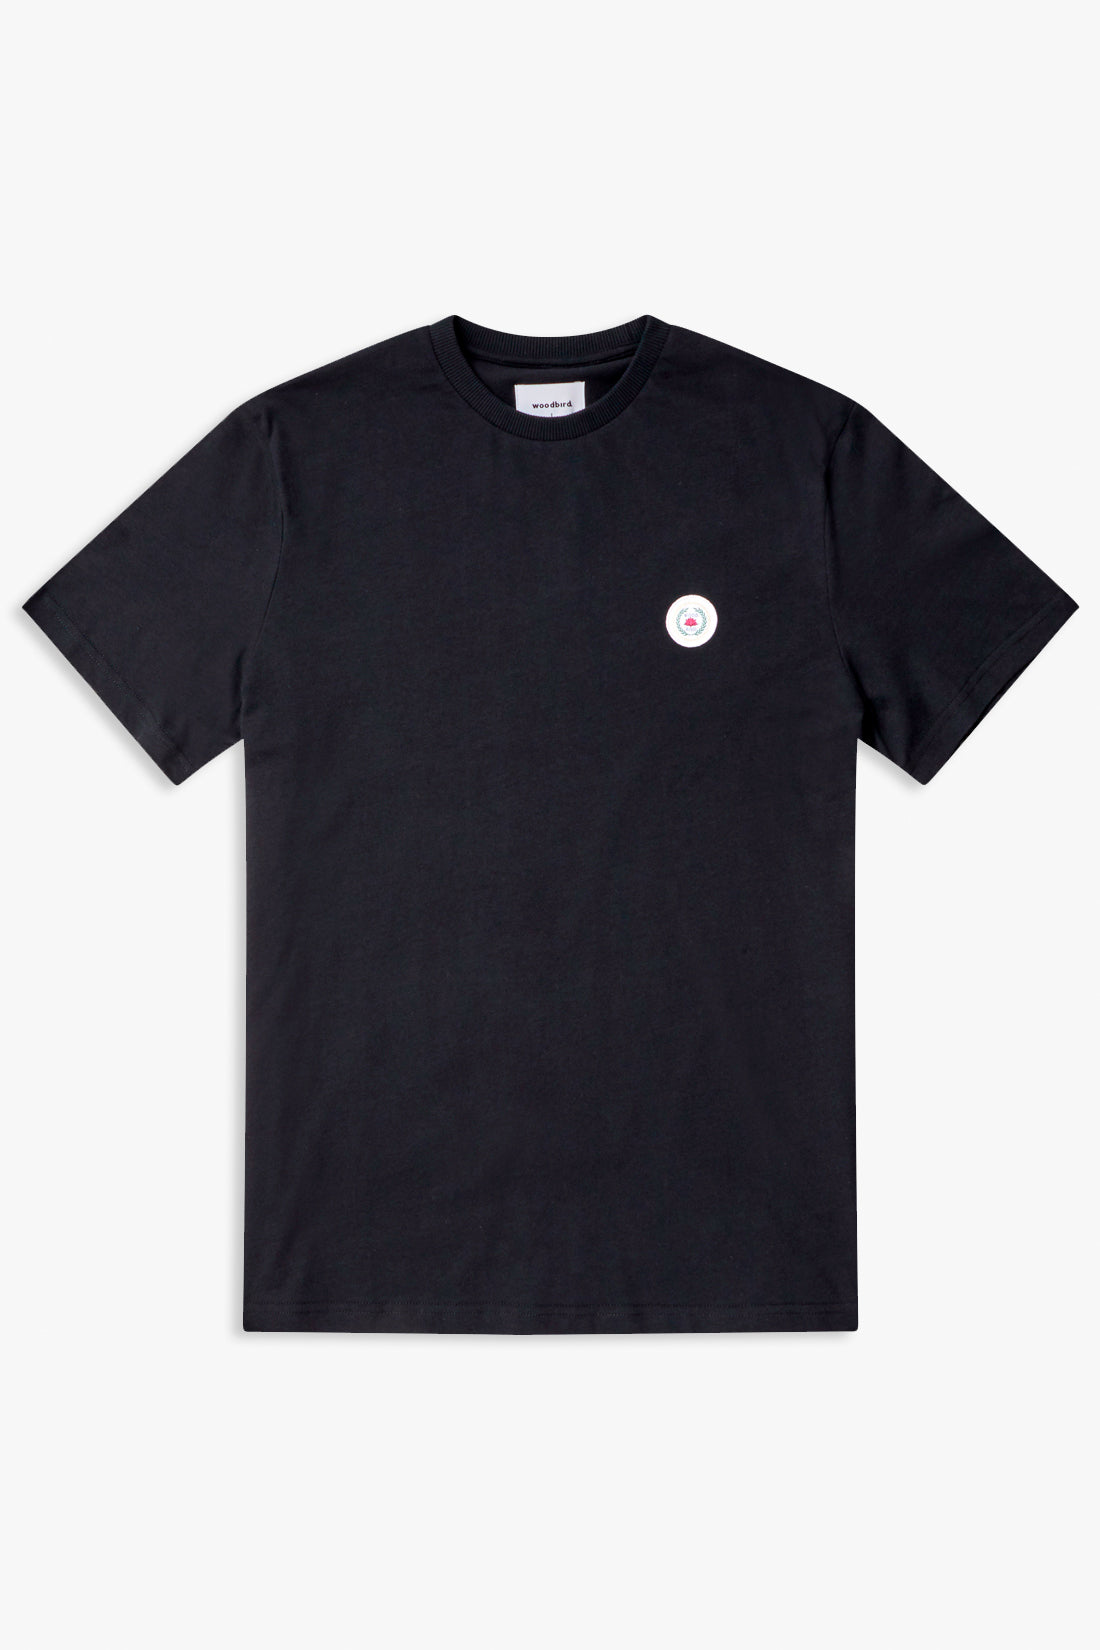 Woodbird Our Jarvis Patch Tee T-Shirts Black